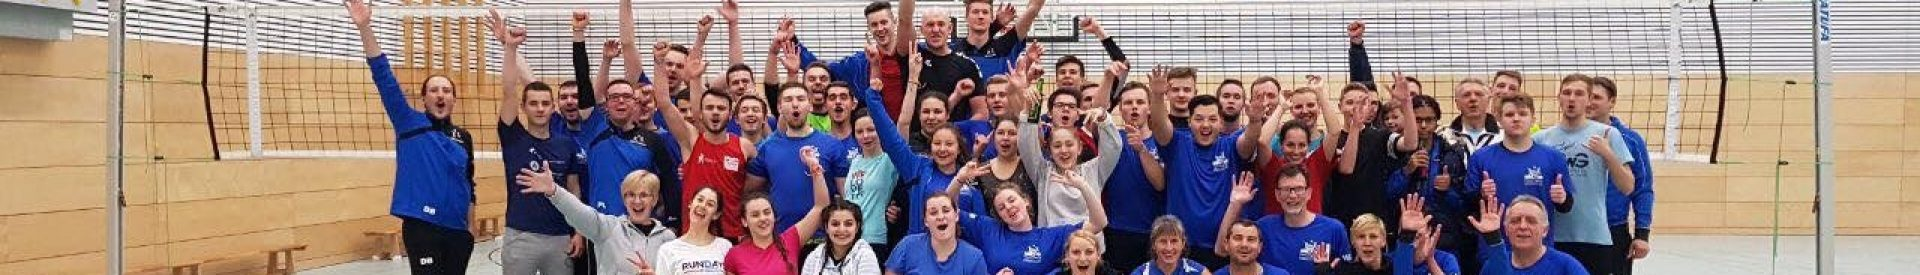 Germersheimer Volleyball-YoungStars suchen Mitstreiter